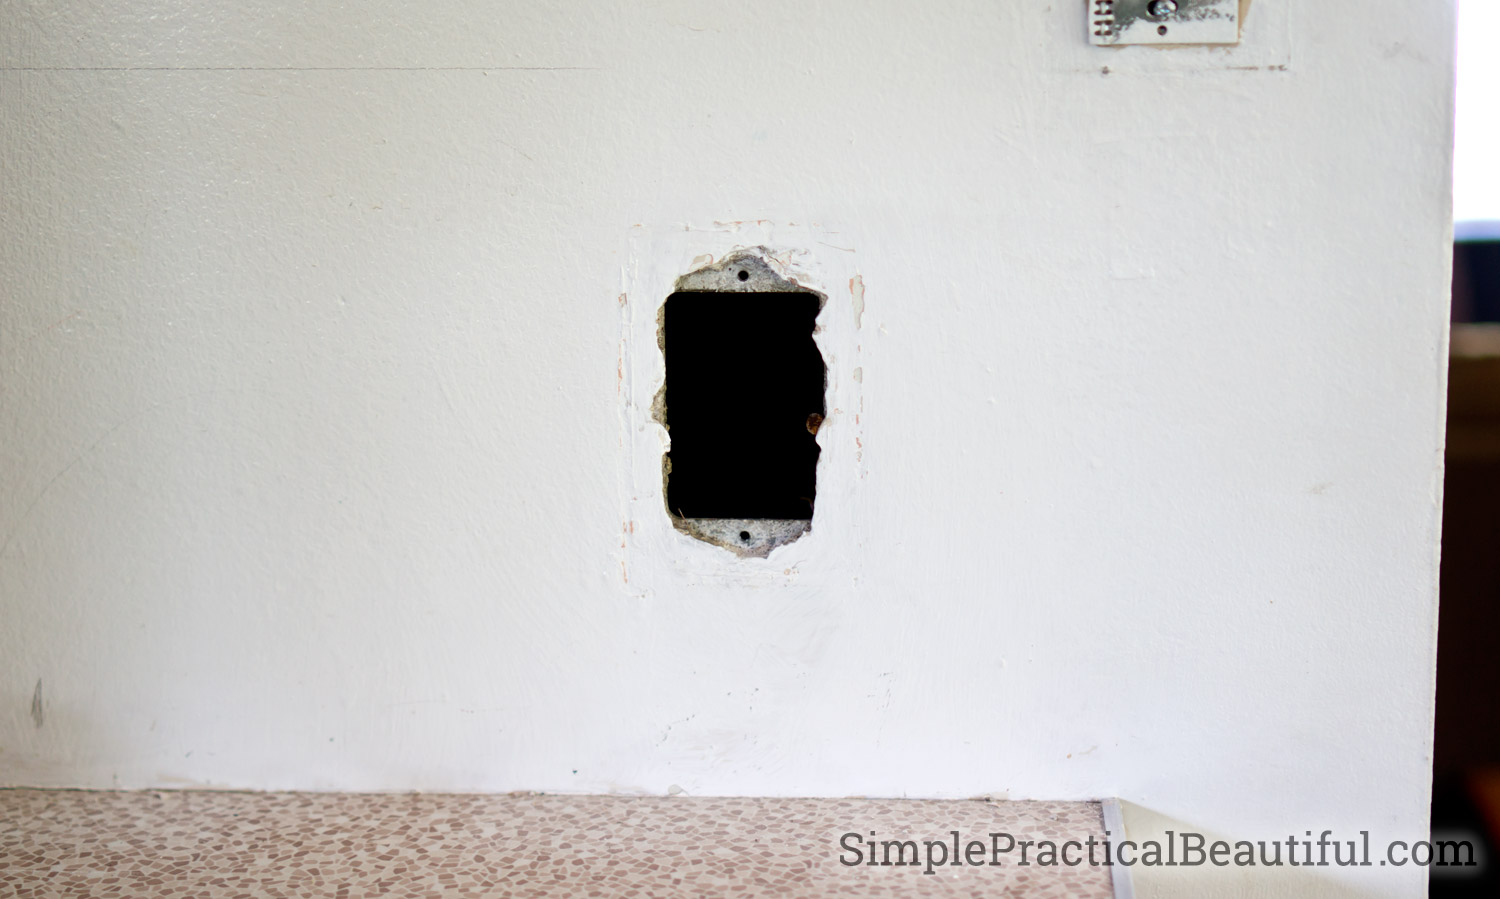 A hole in the wall that needs to be repaired from an empty phone outlet